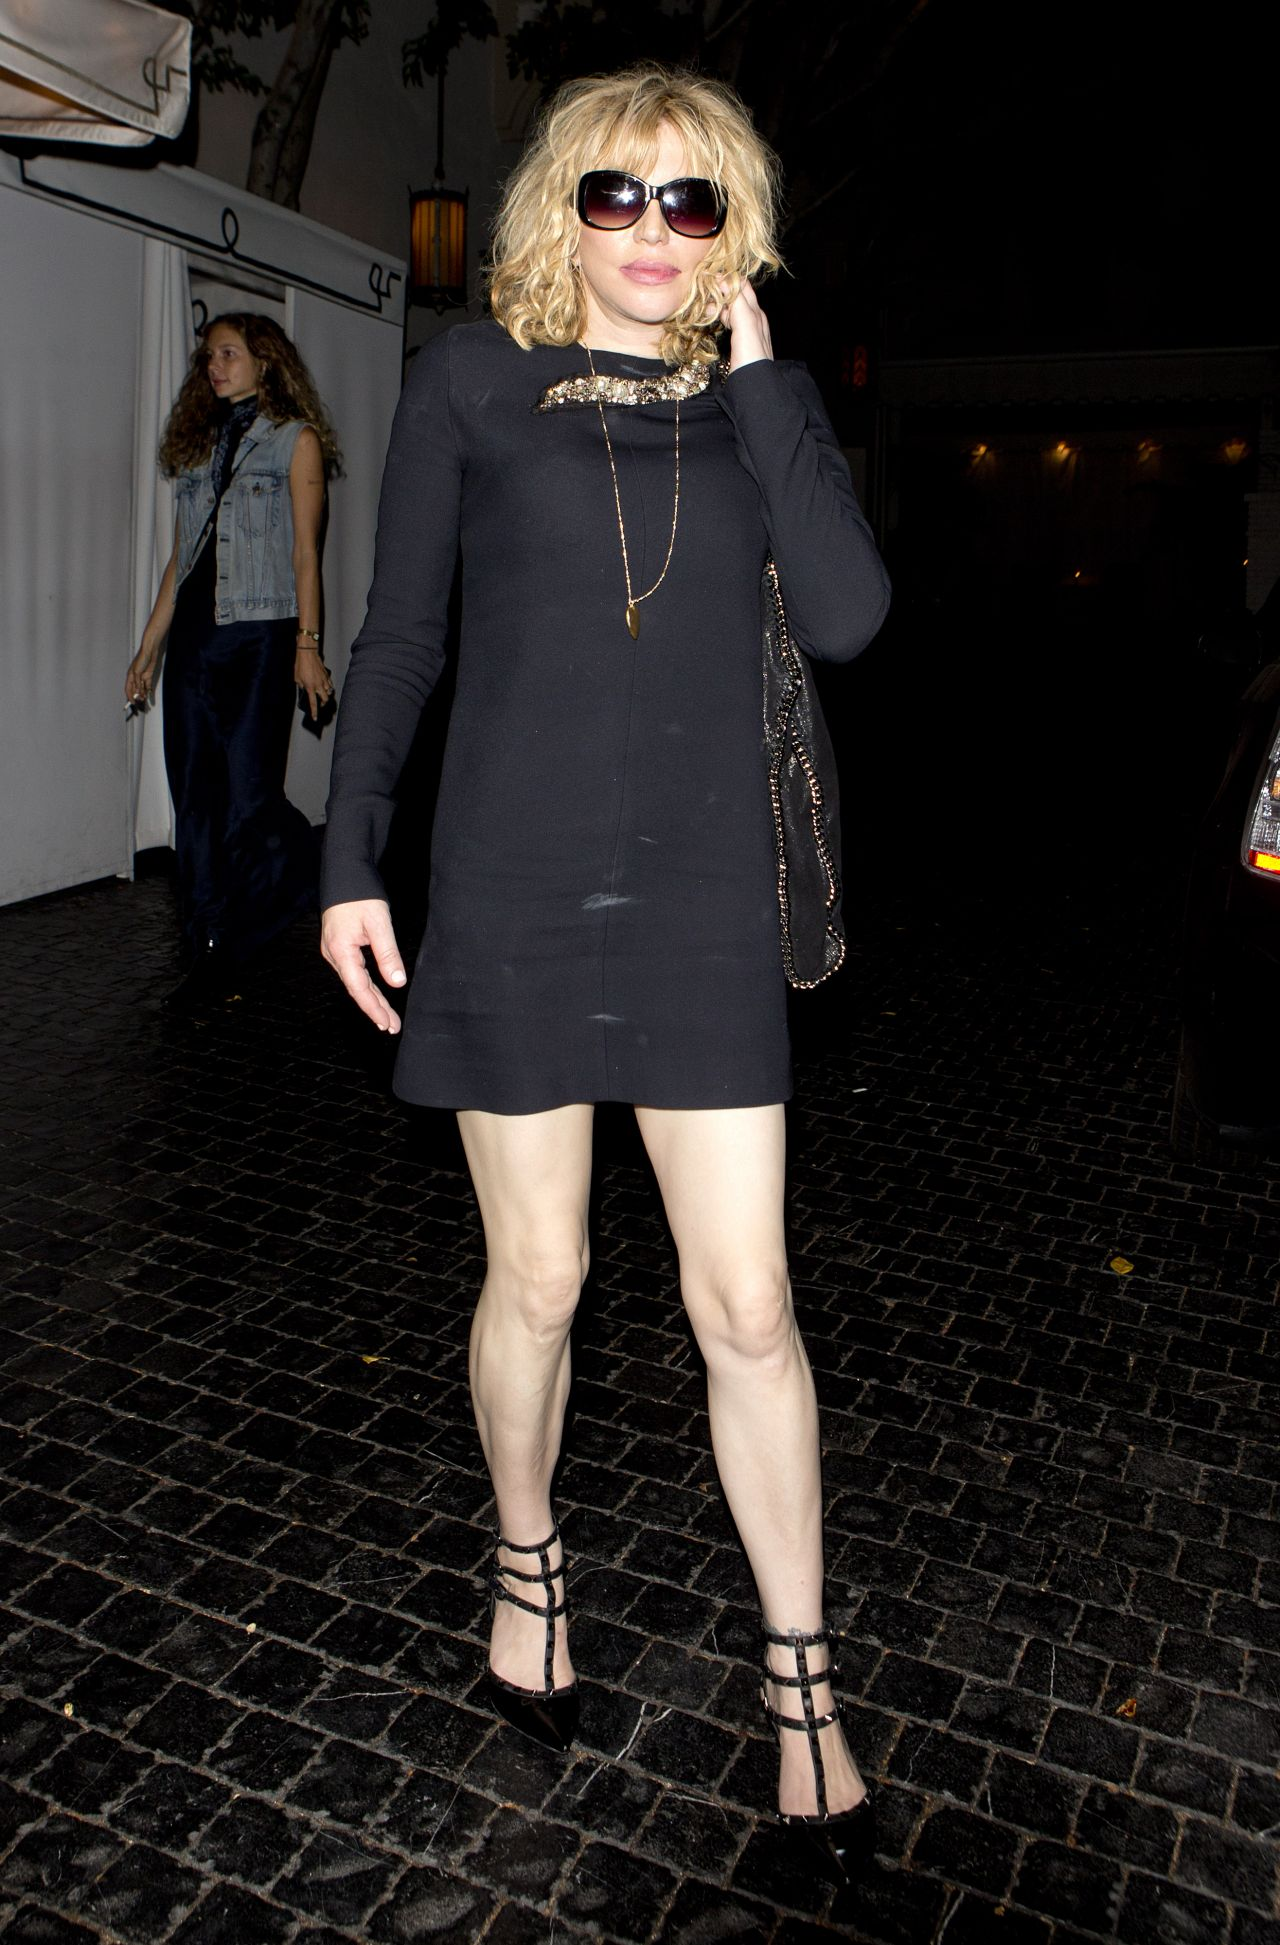 courtney-love-leaving-the-chateau-marmont-hotel-in-west-hollywood-august-2015_1